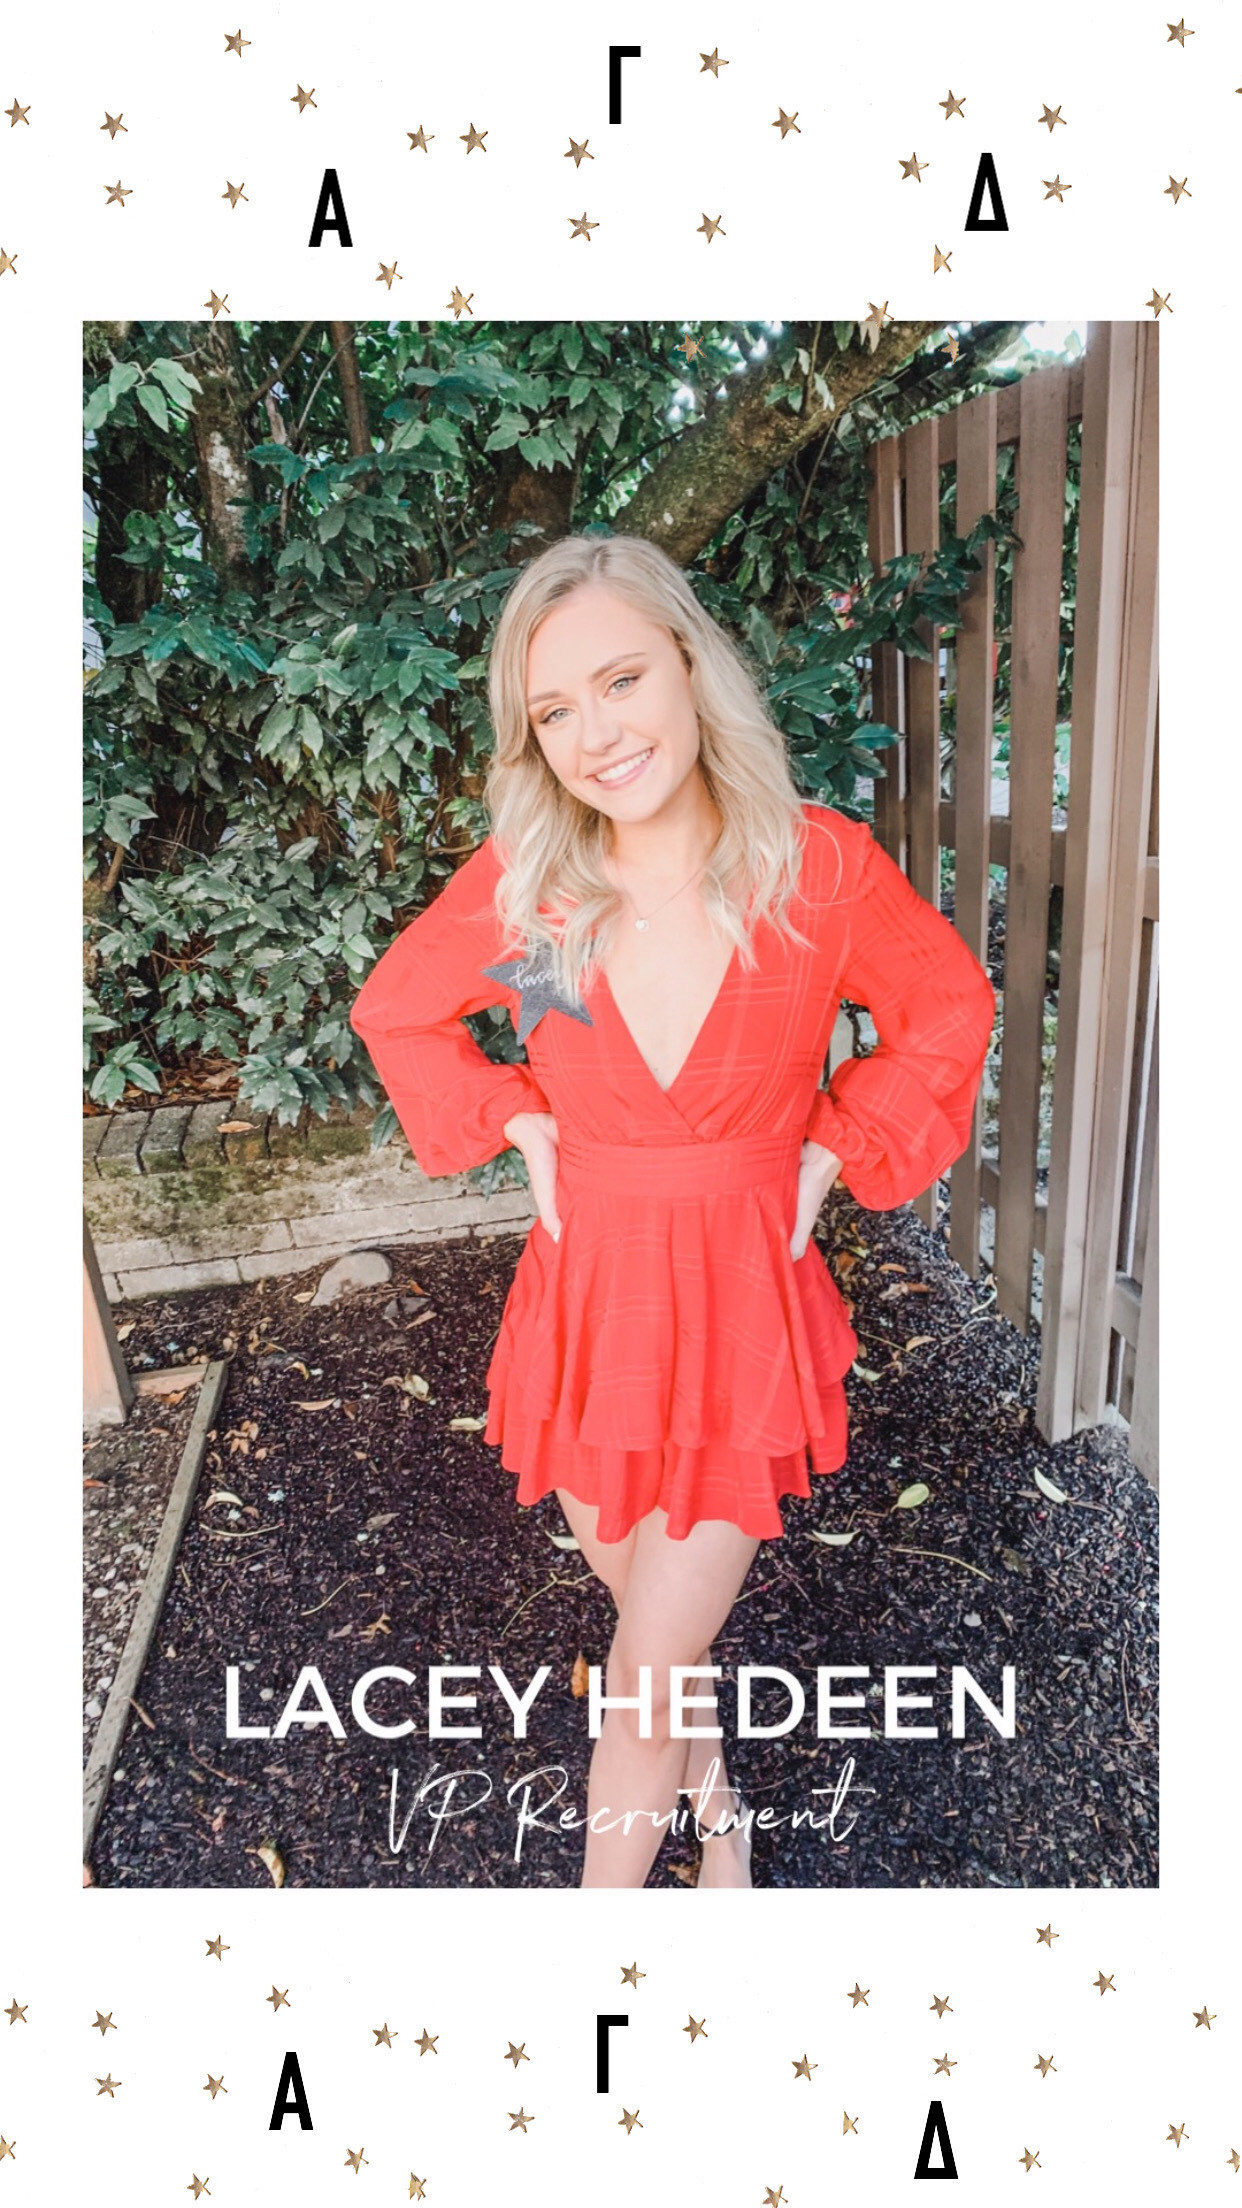 officer Lacey Hedeen